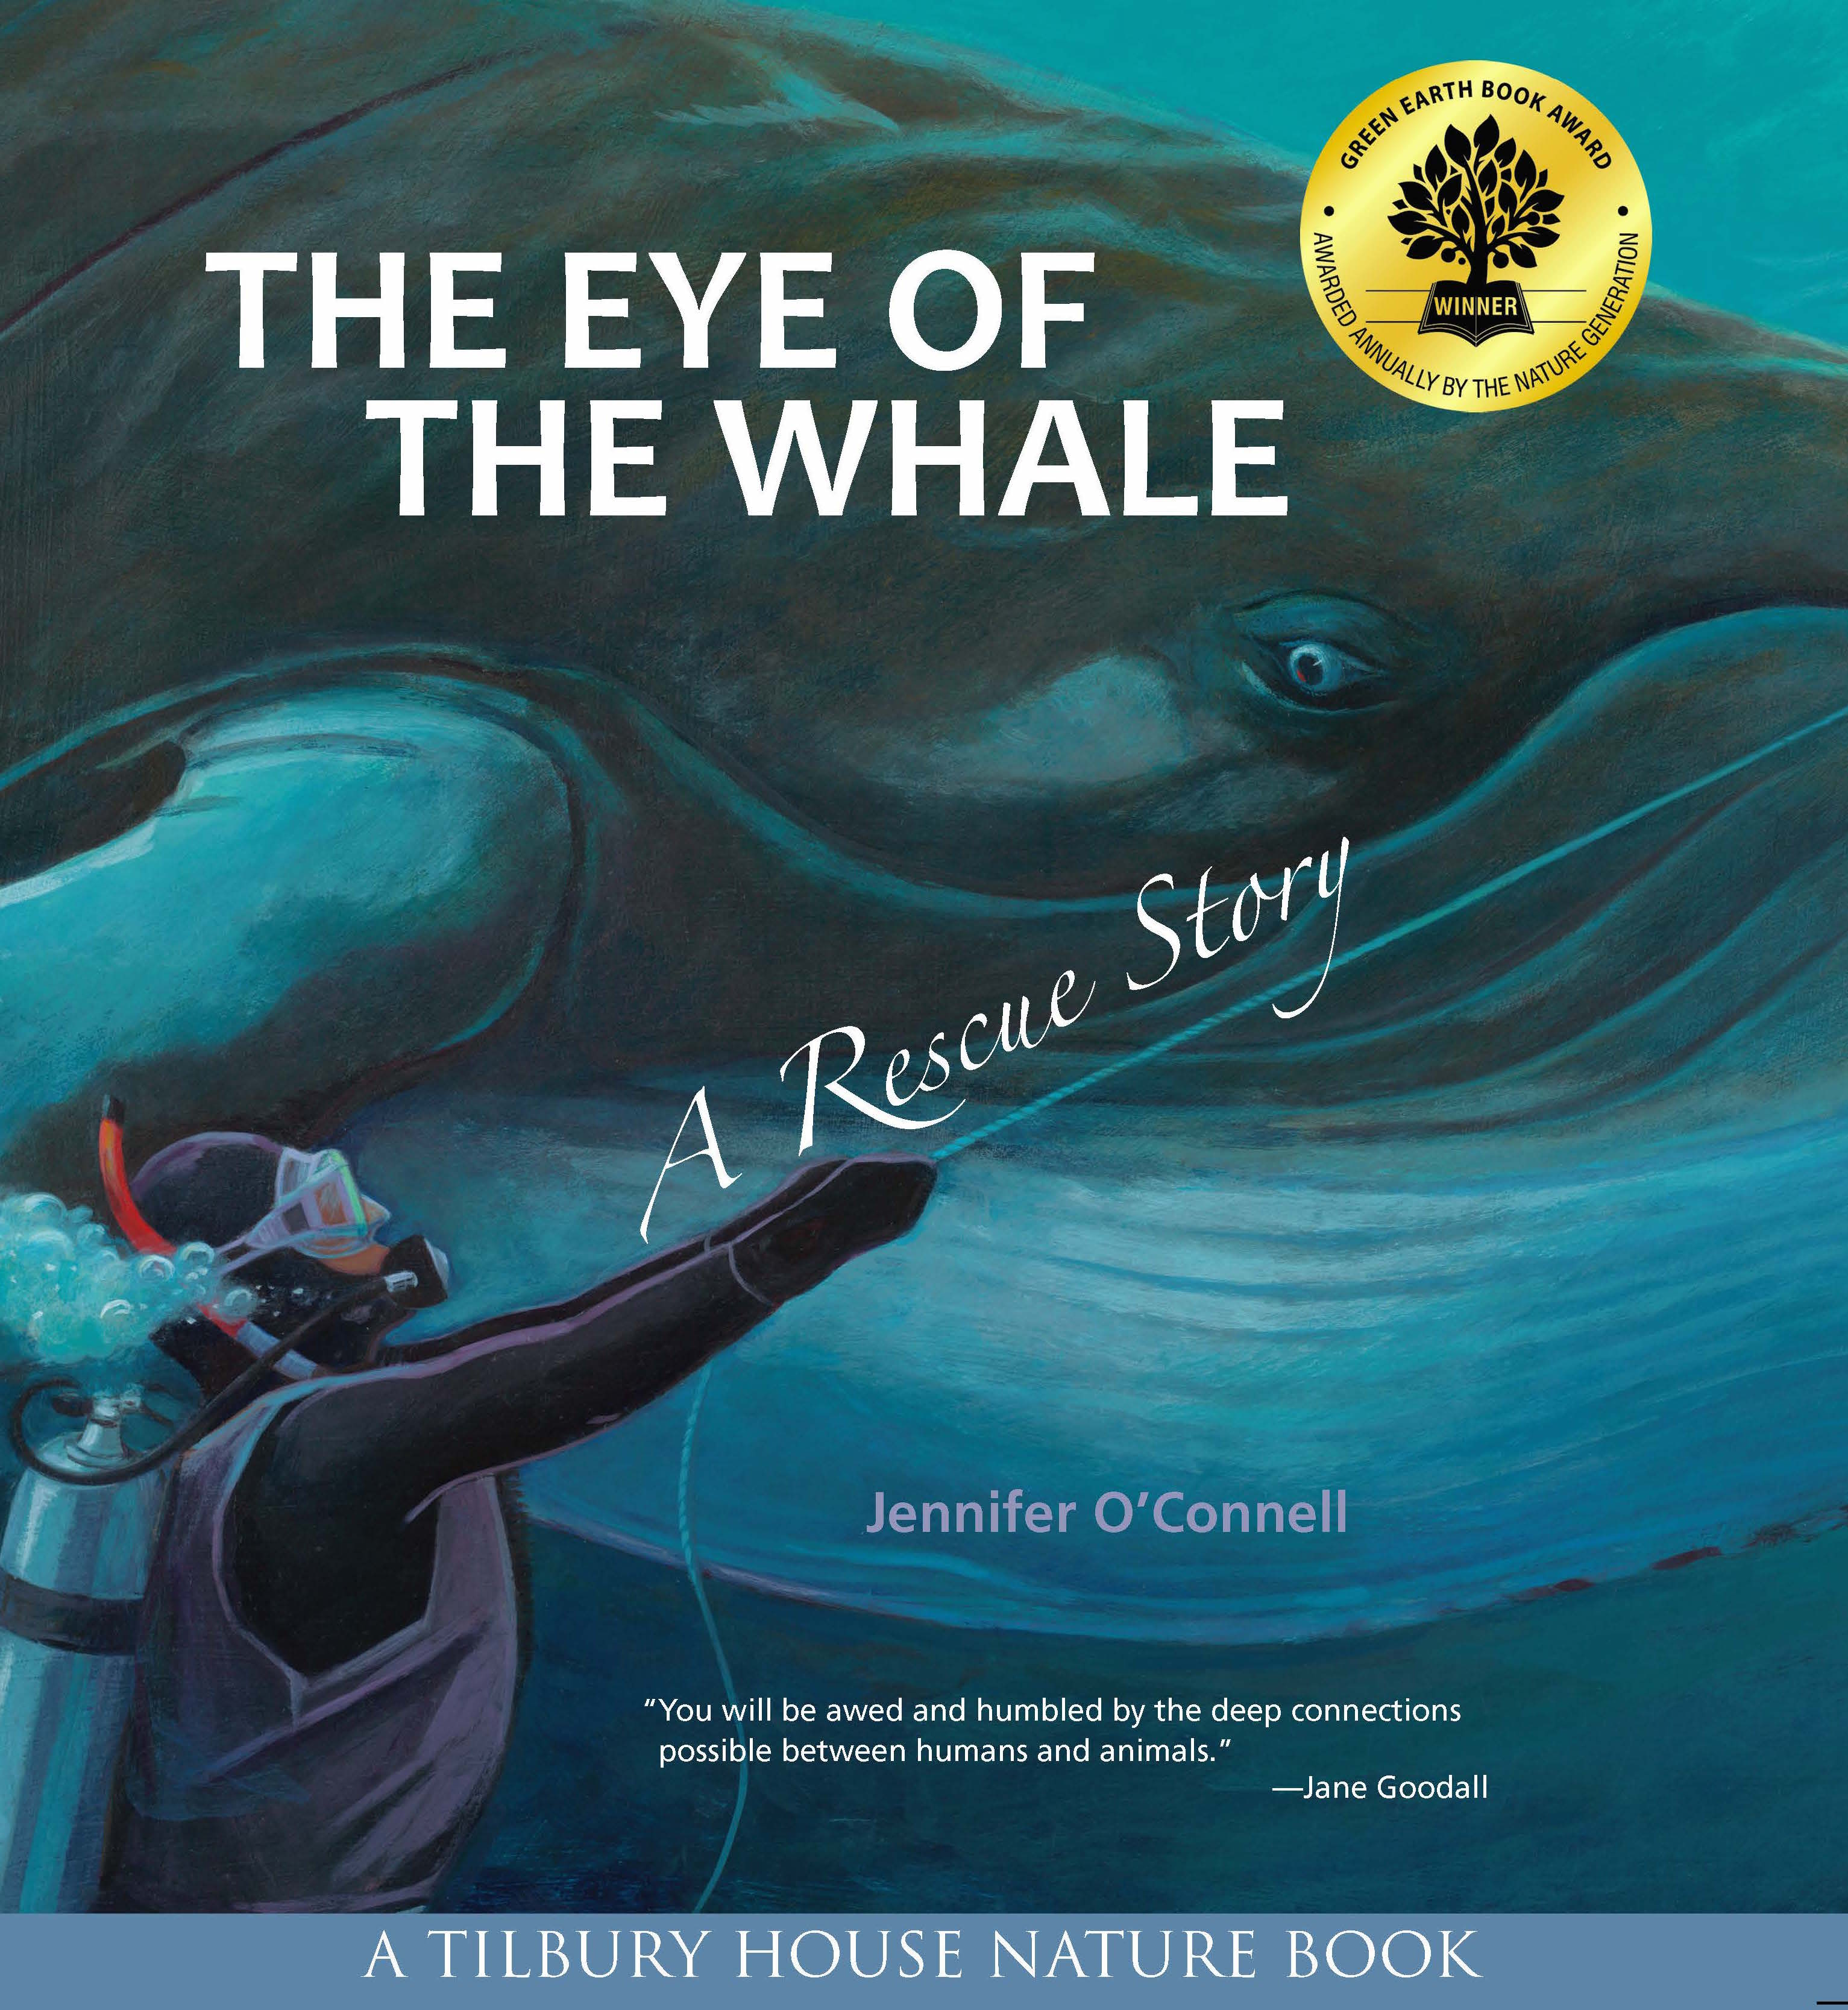 The Eye of the Whale